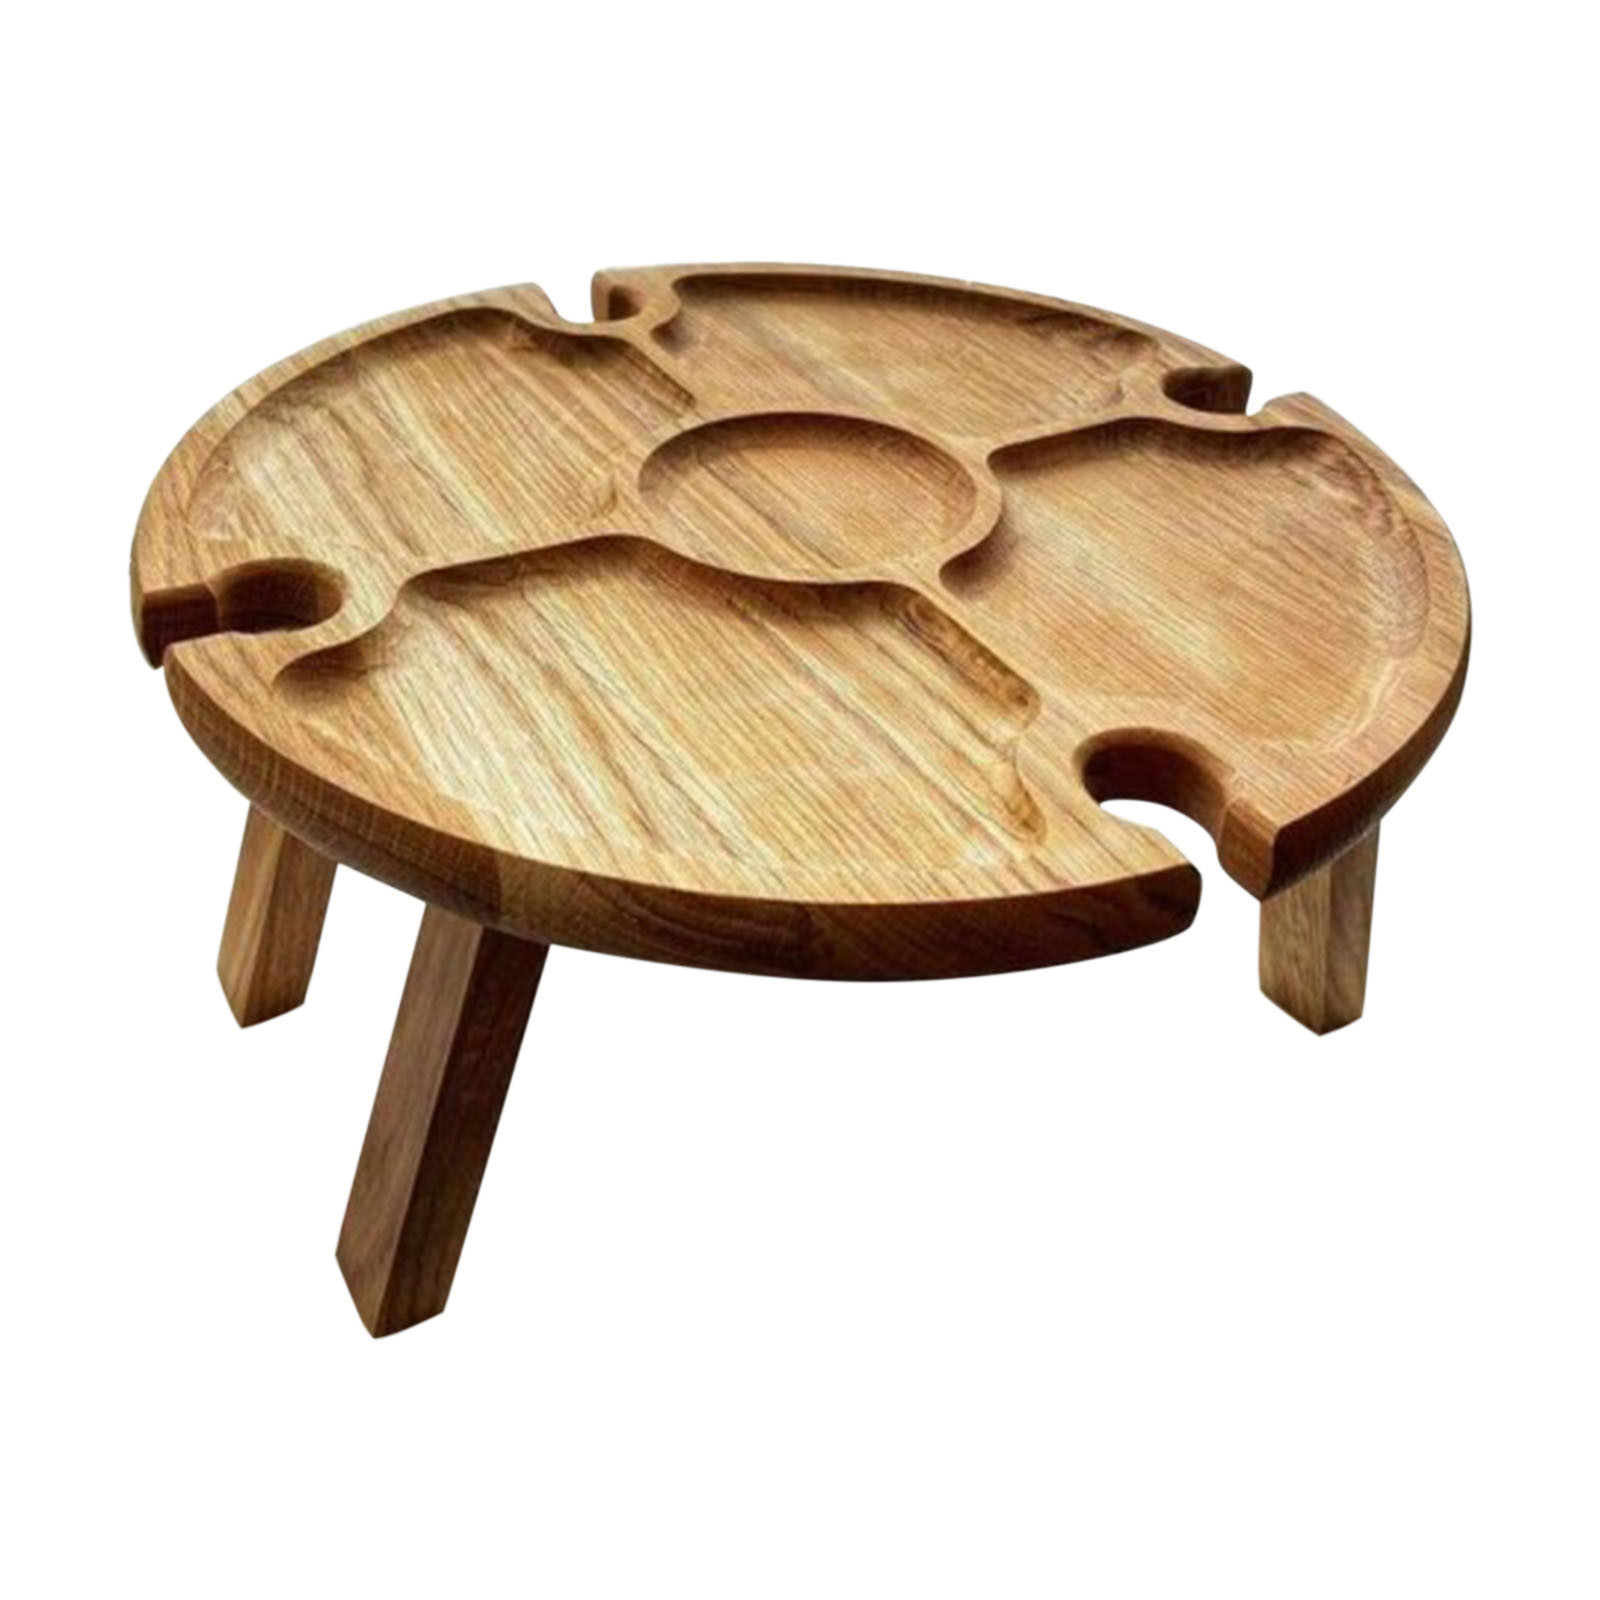 Outdoor Portable Solid Wood Wooden Picnic Wine Table With Retractable Legs Picnic wine table with retractable legs wooden table